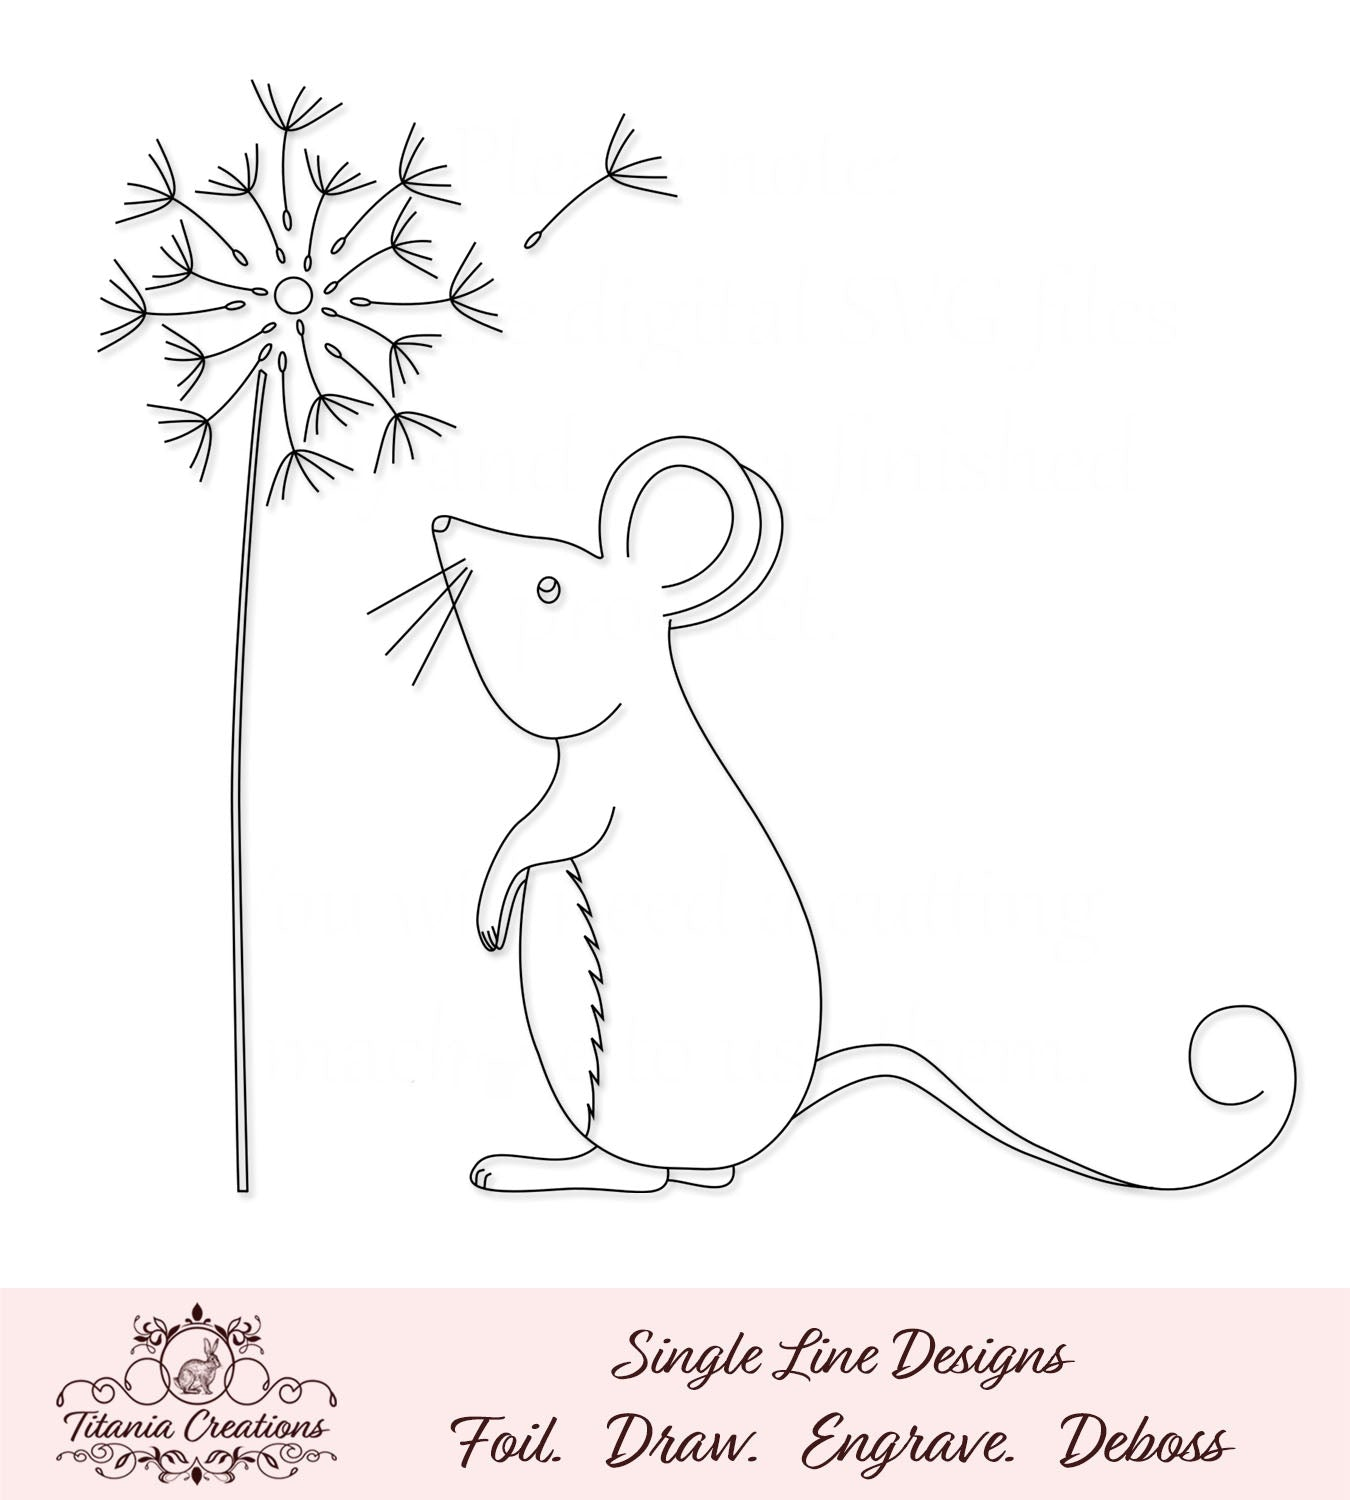 Single Line Mouse With Dandelion Foil Quill SVG